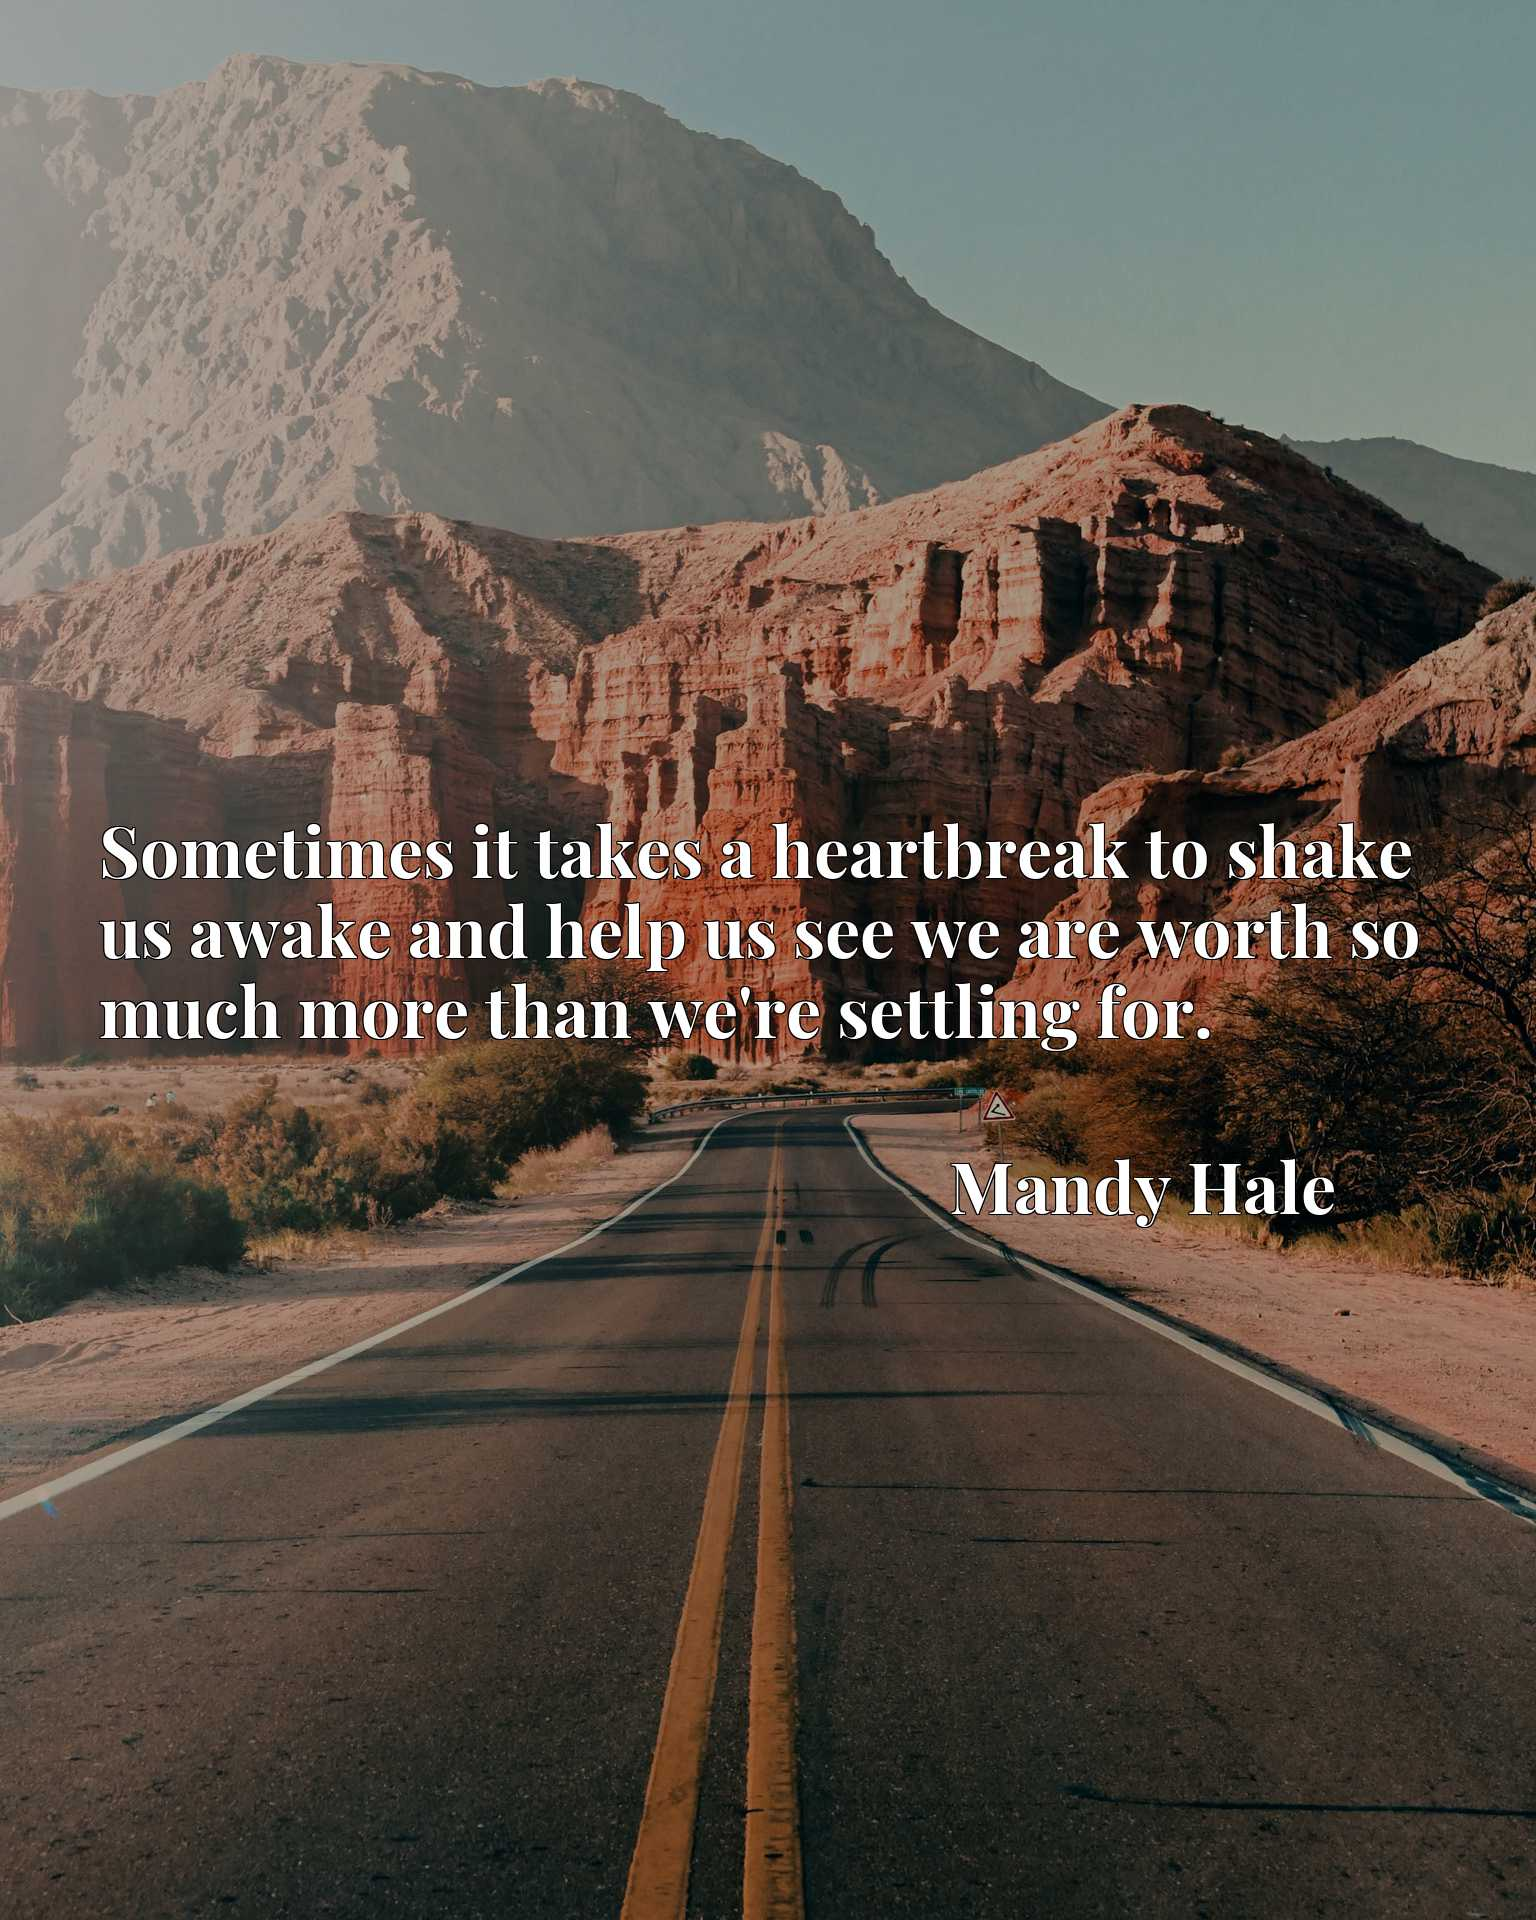 Quote Picture :Sometimes it takes a heartbreak to shake us awake and help us see we are worth so much more than we're settling for.